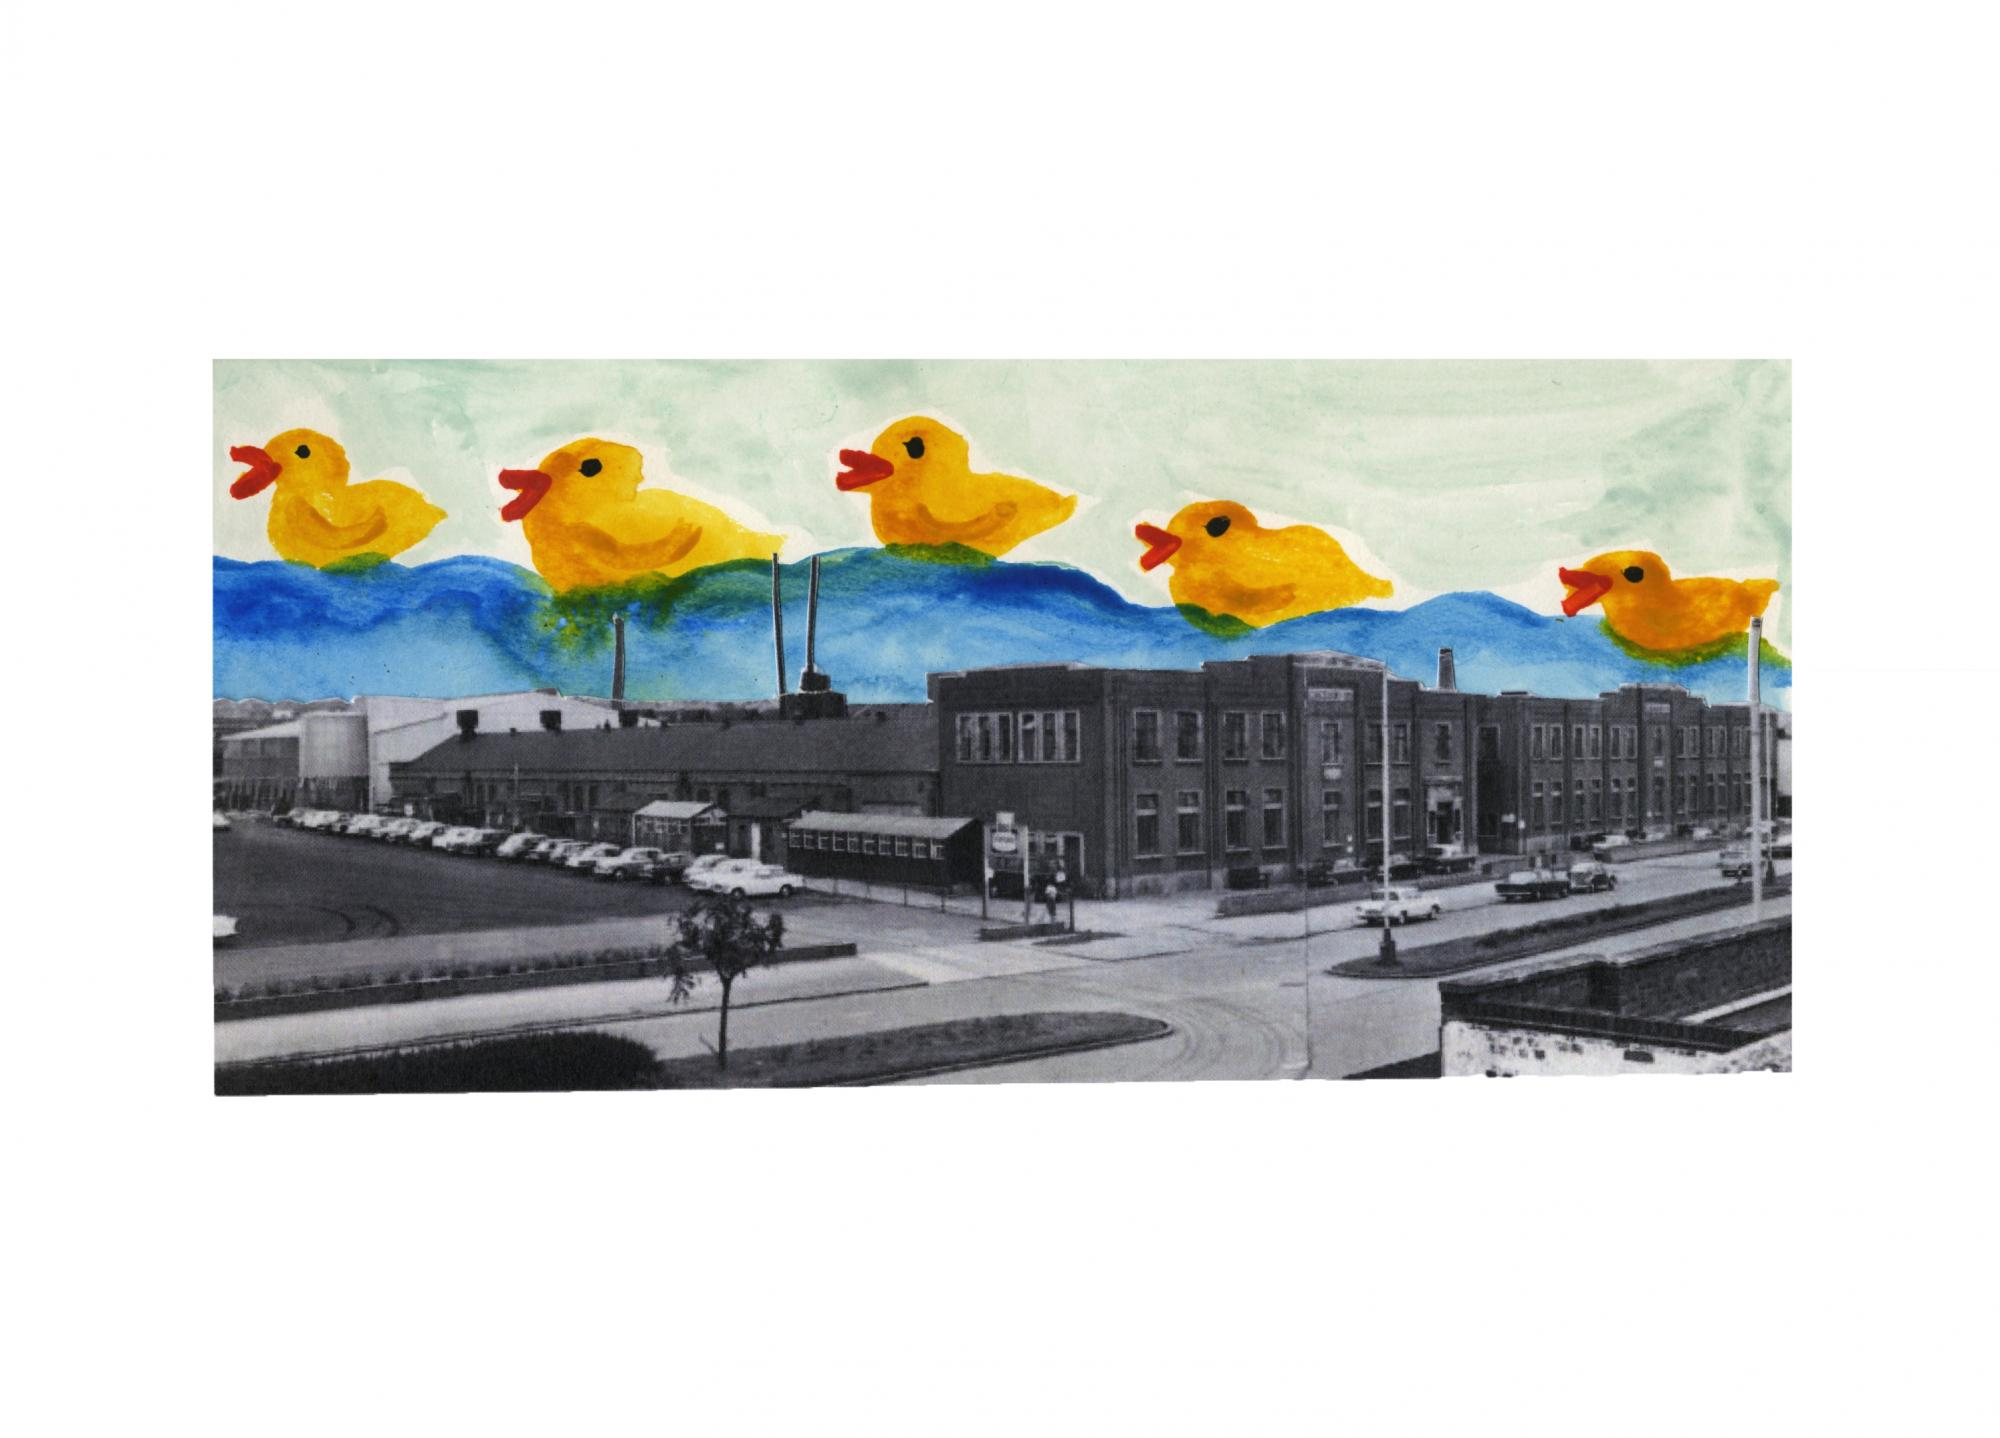 Abbey Lane, Leicester: Exterior. BXL. (photograph). Cut out sky with watercolour rubber ducks.